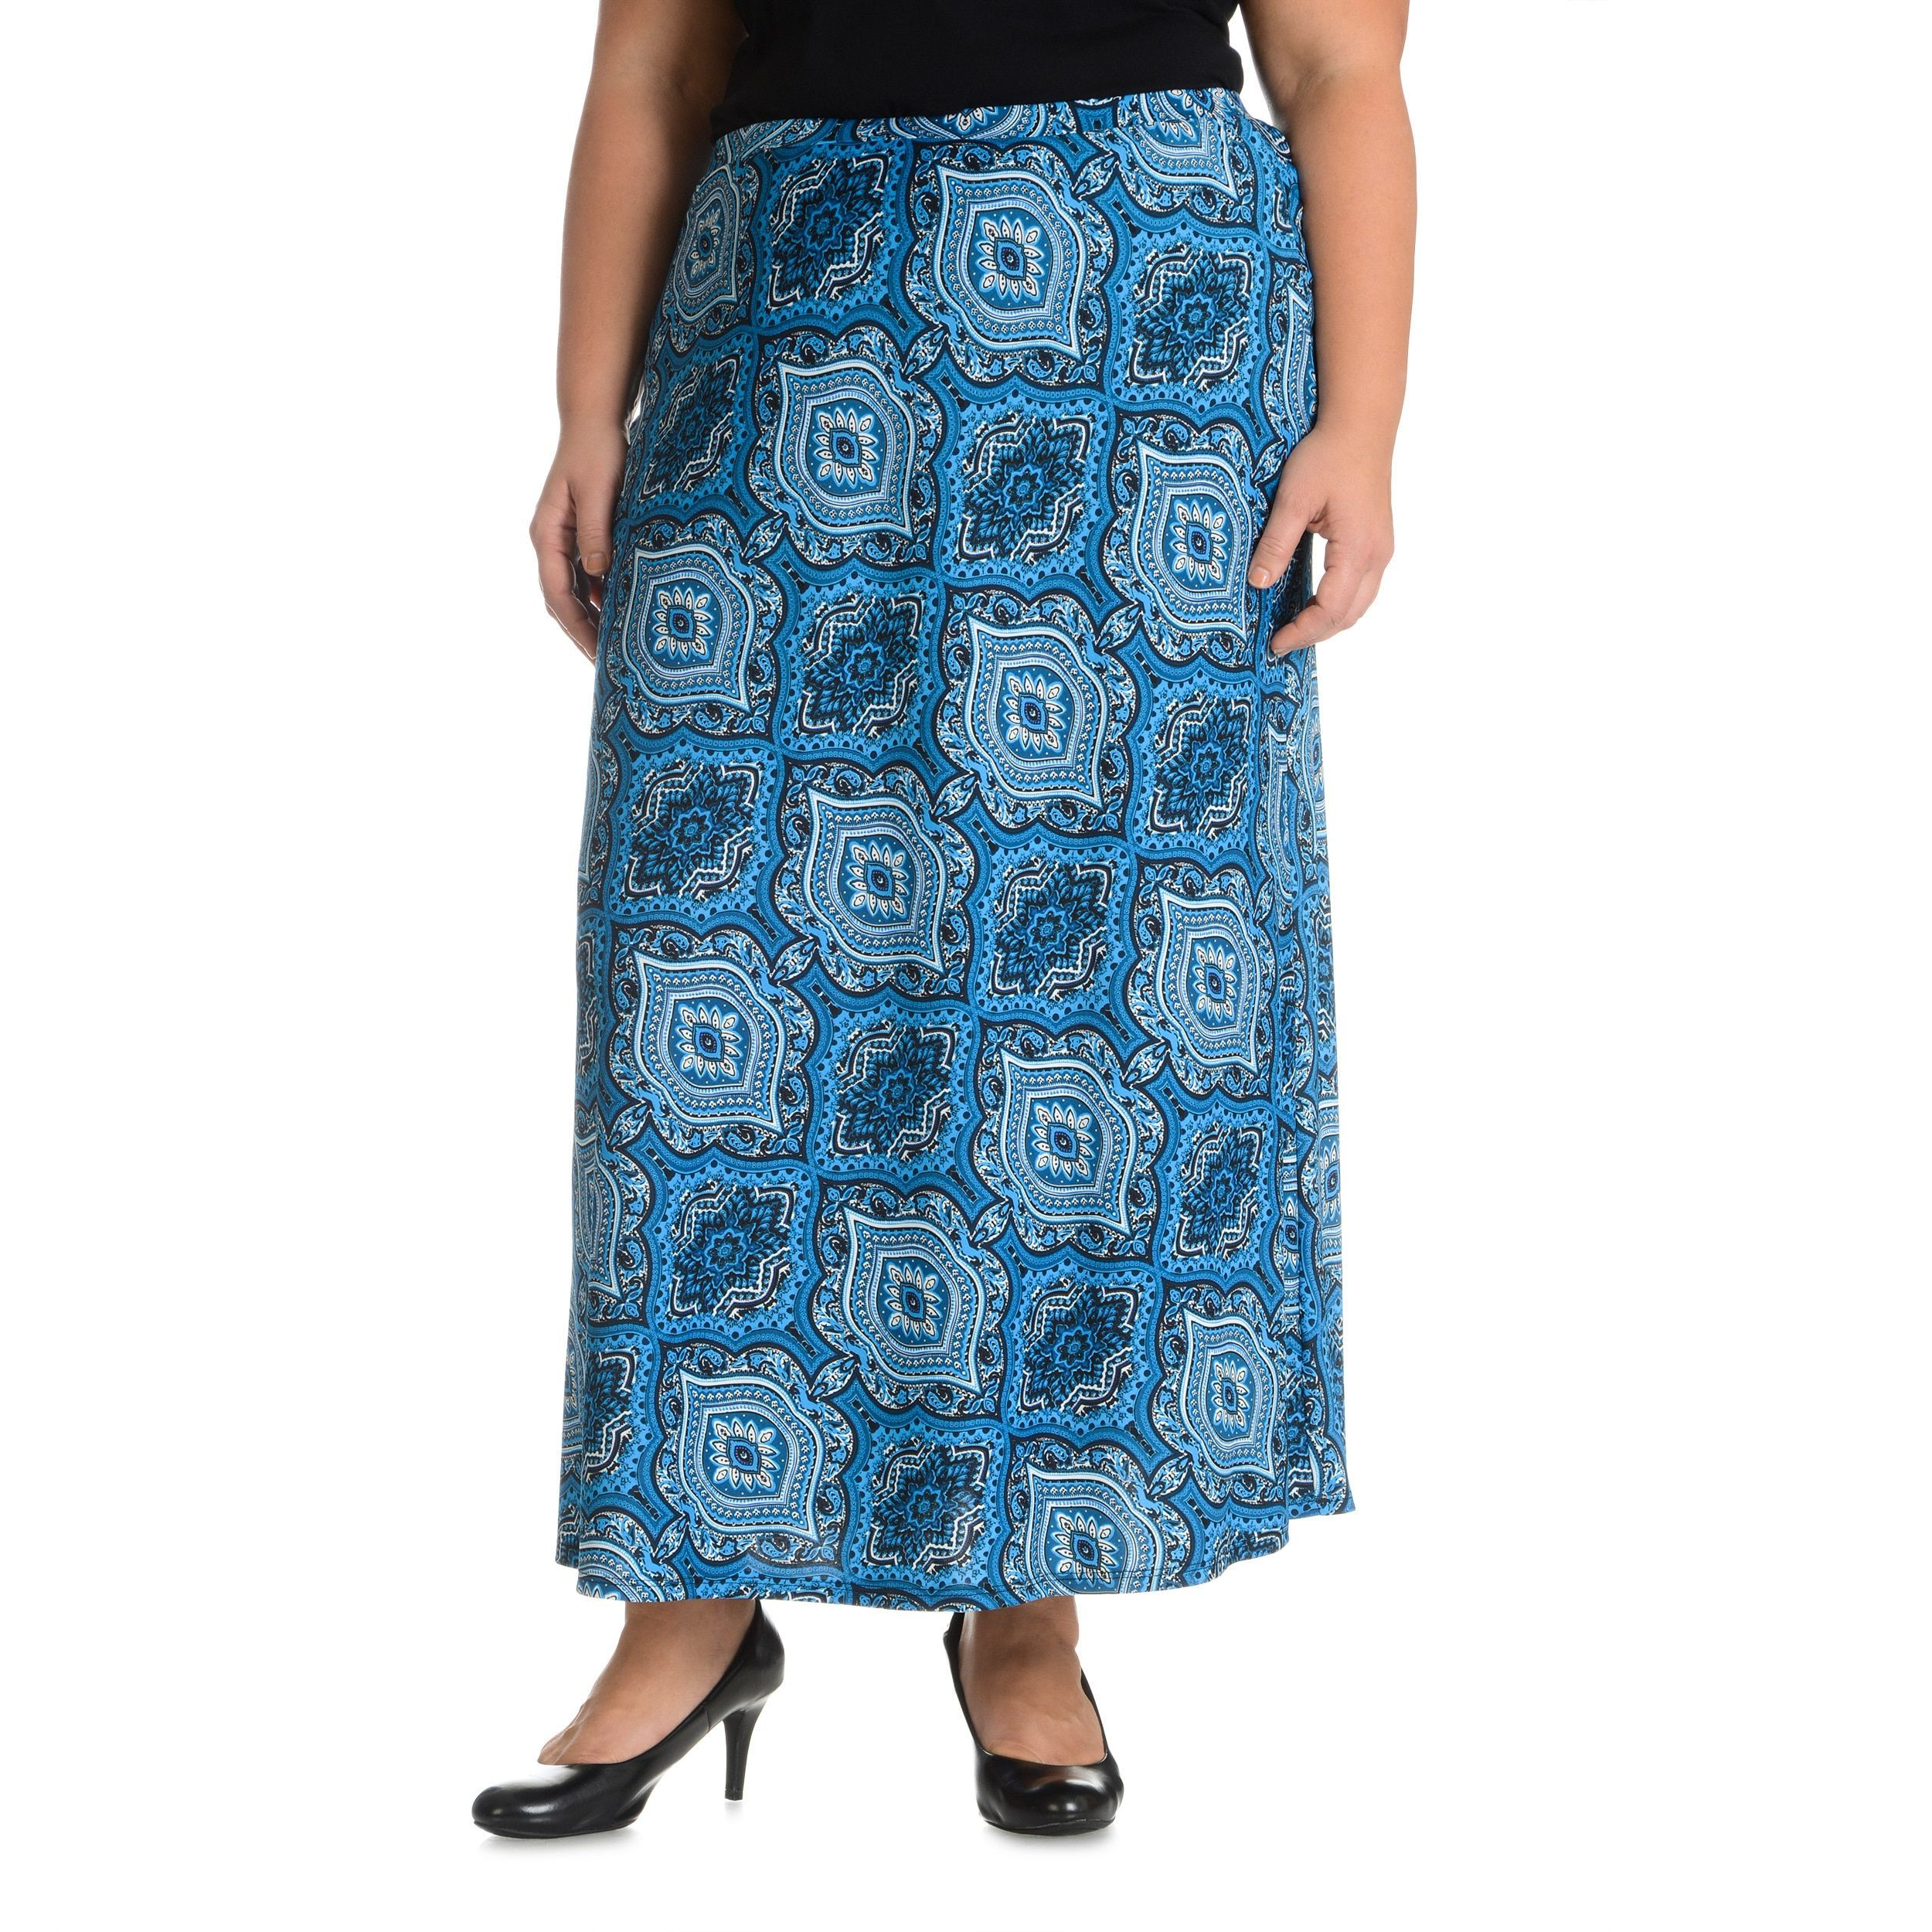 Cyrus Sunny Leigh Women's Plus Size Moroccan Skirt